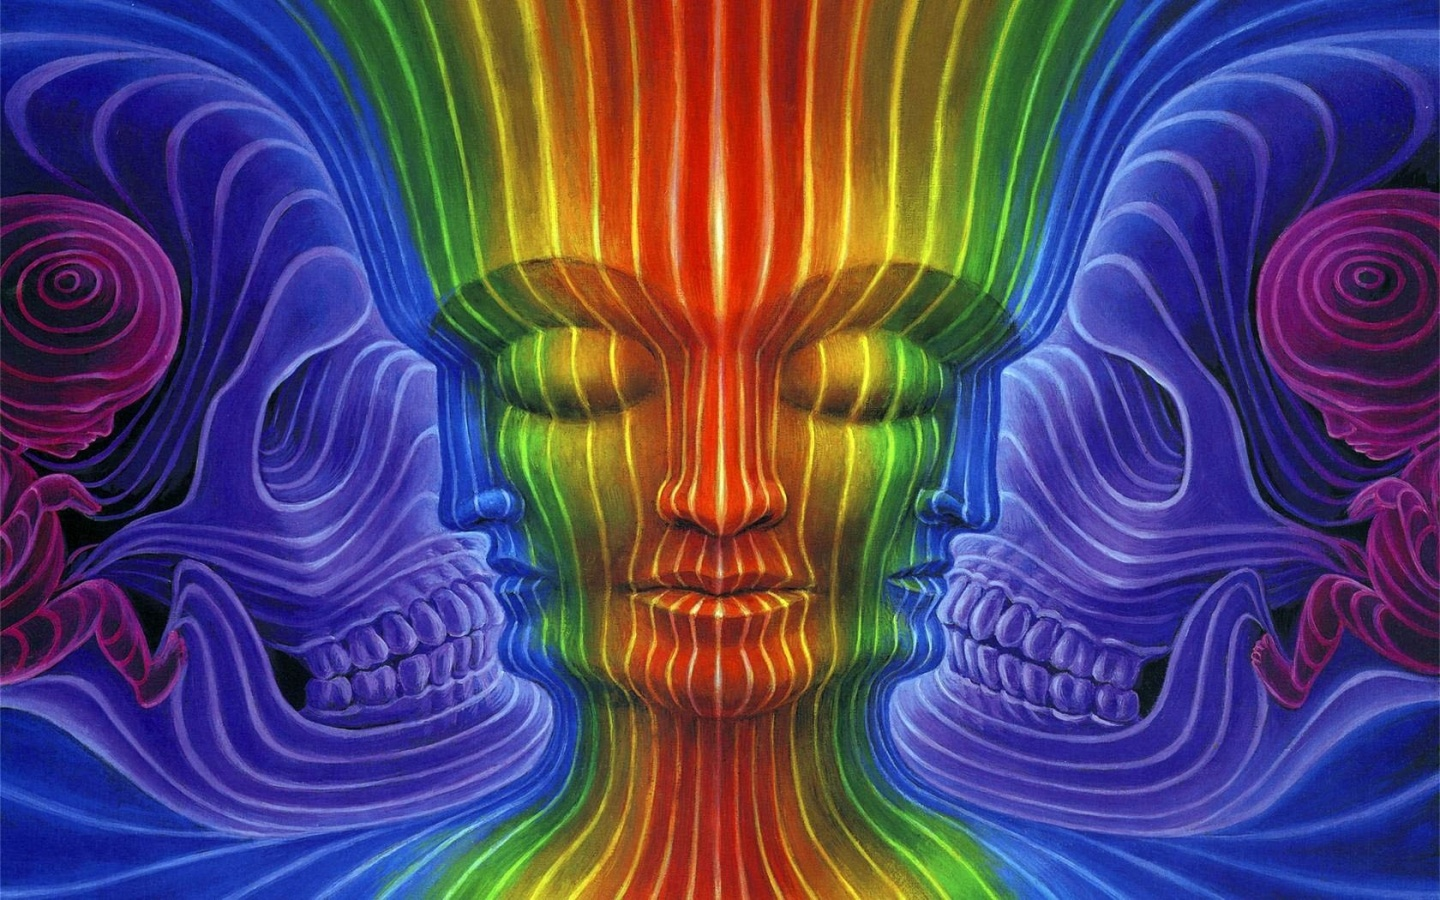 Alex Grey Interbeing Wallpapers 1440x900 518624